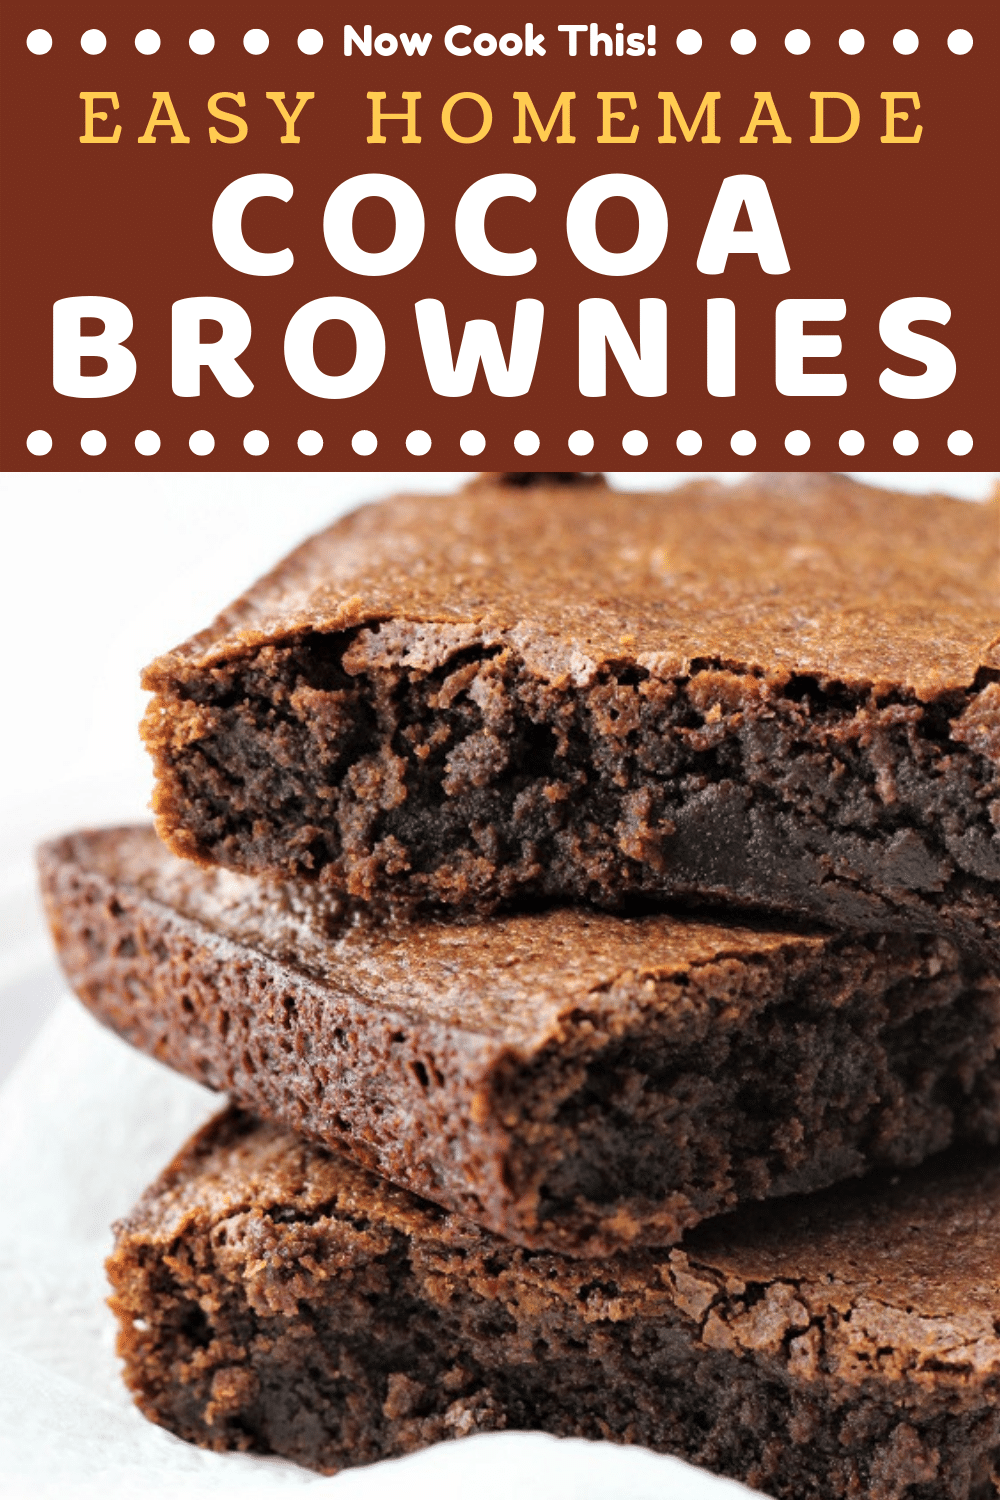 EASY HOMEMADE COCOA BROWNIES • Now Cook This!